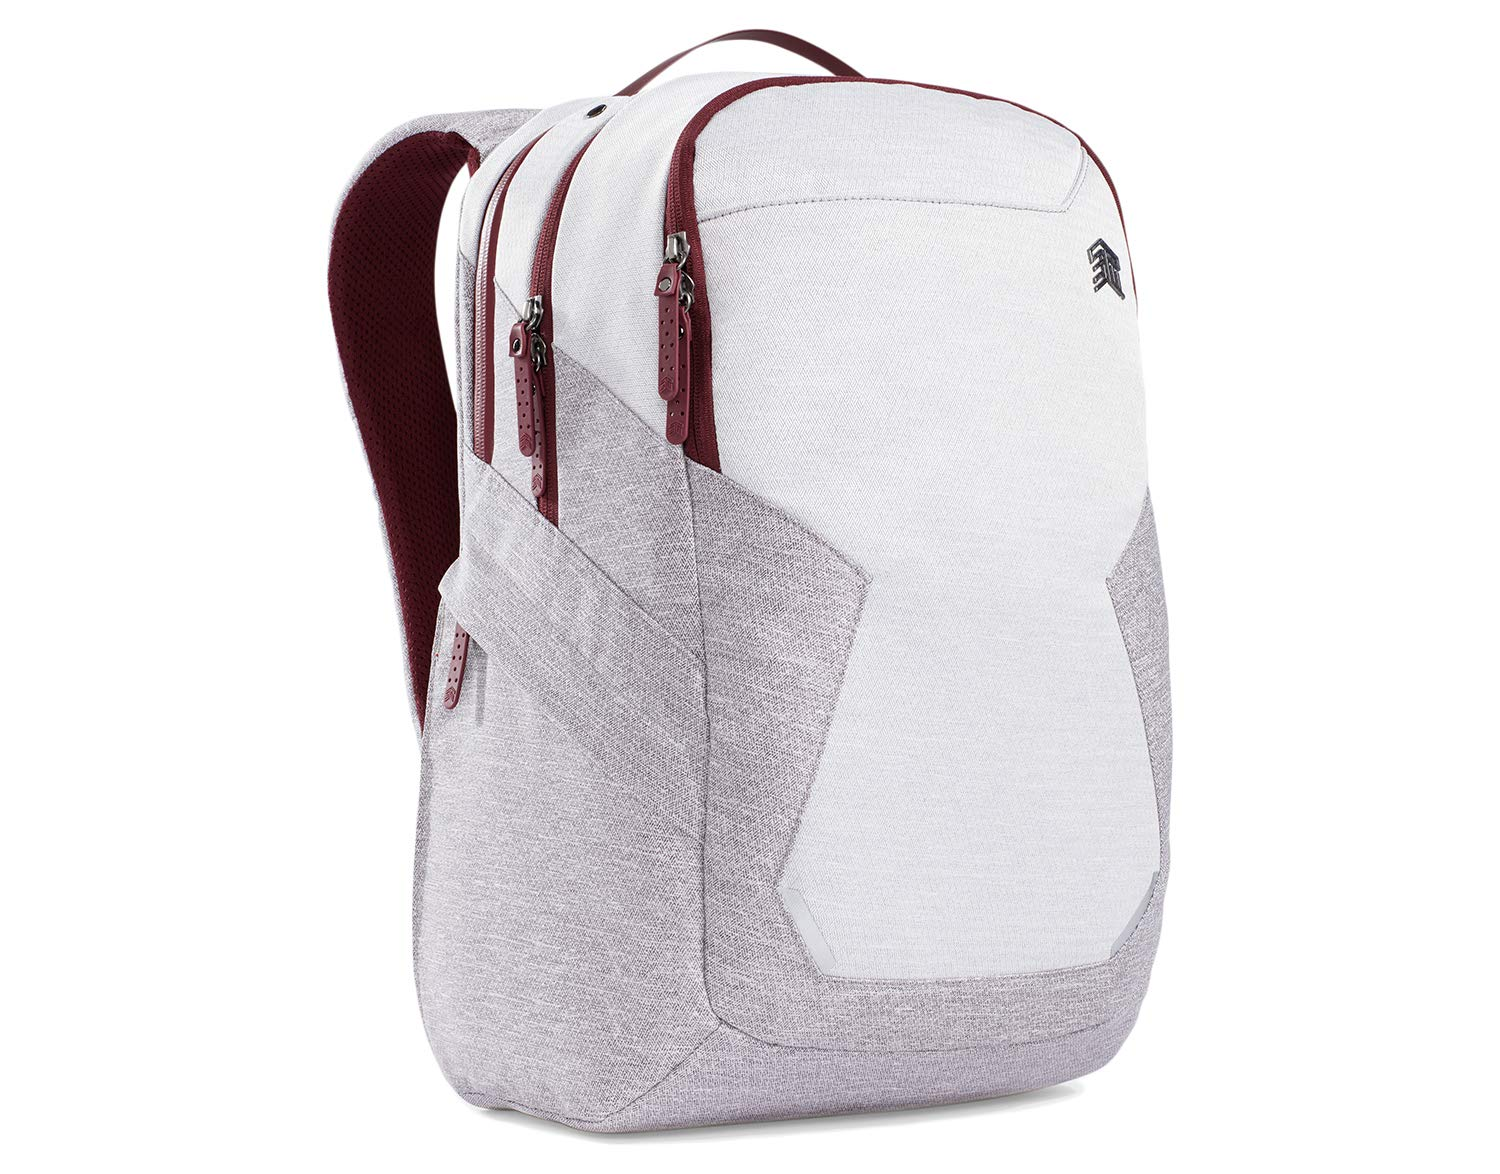 STM Myth Backpack